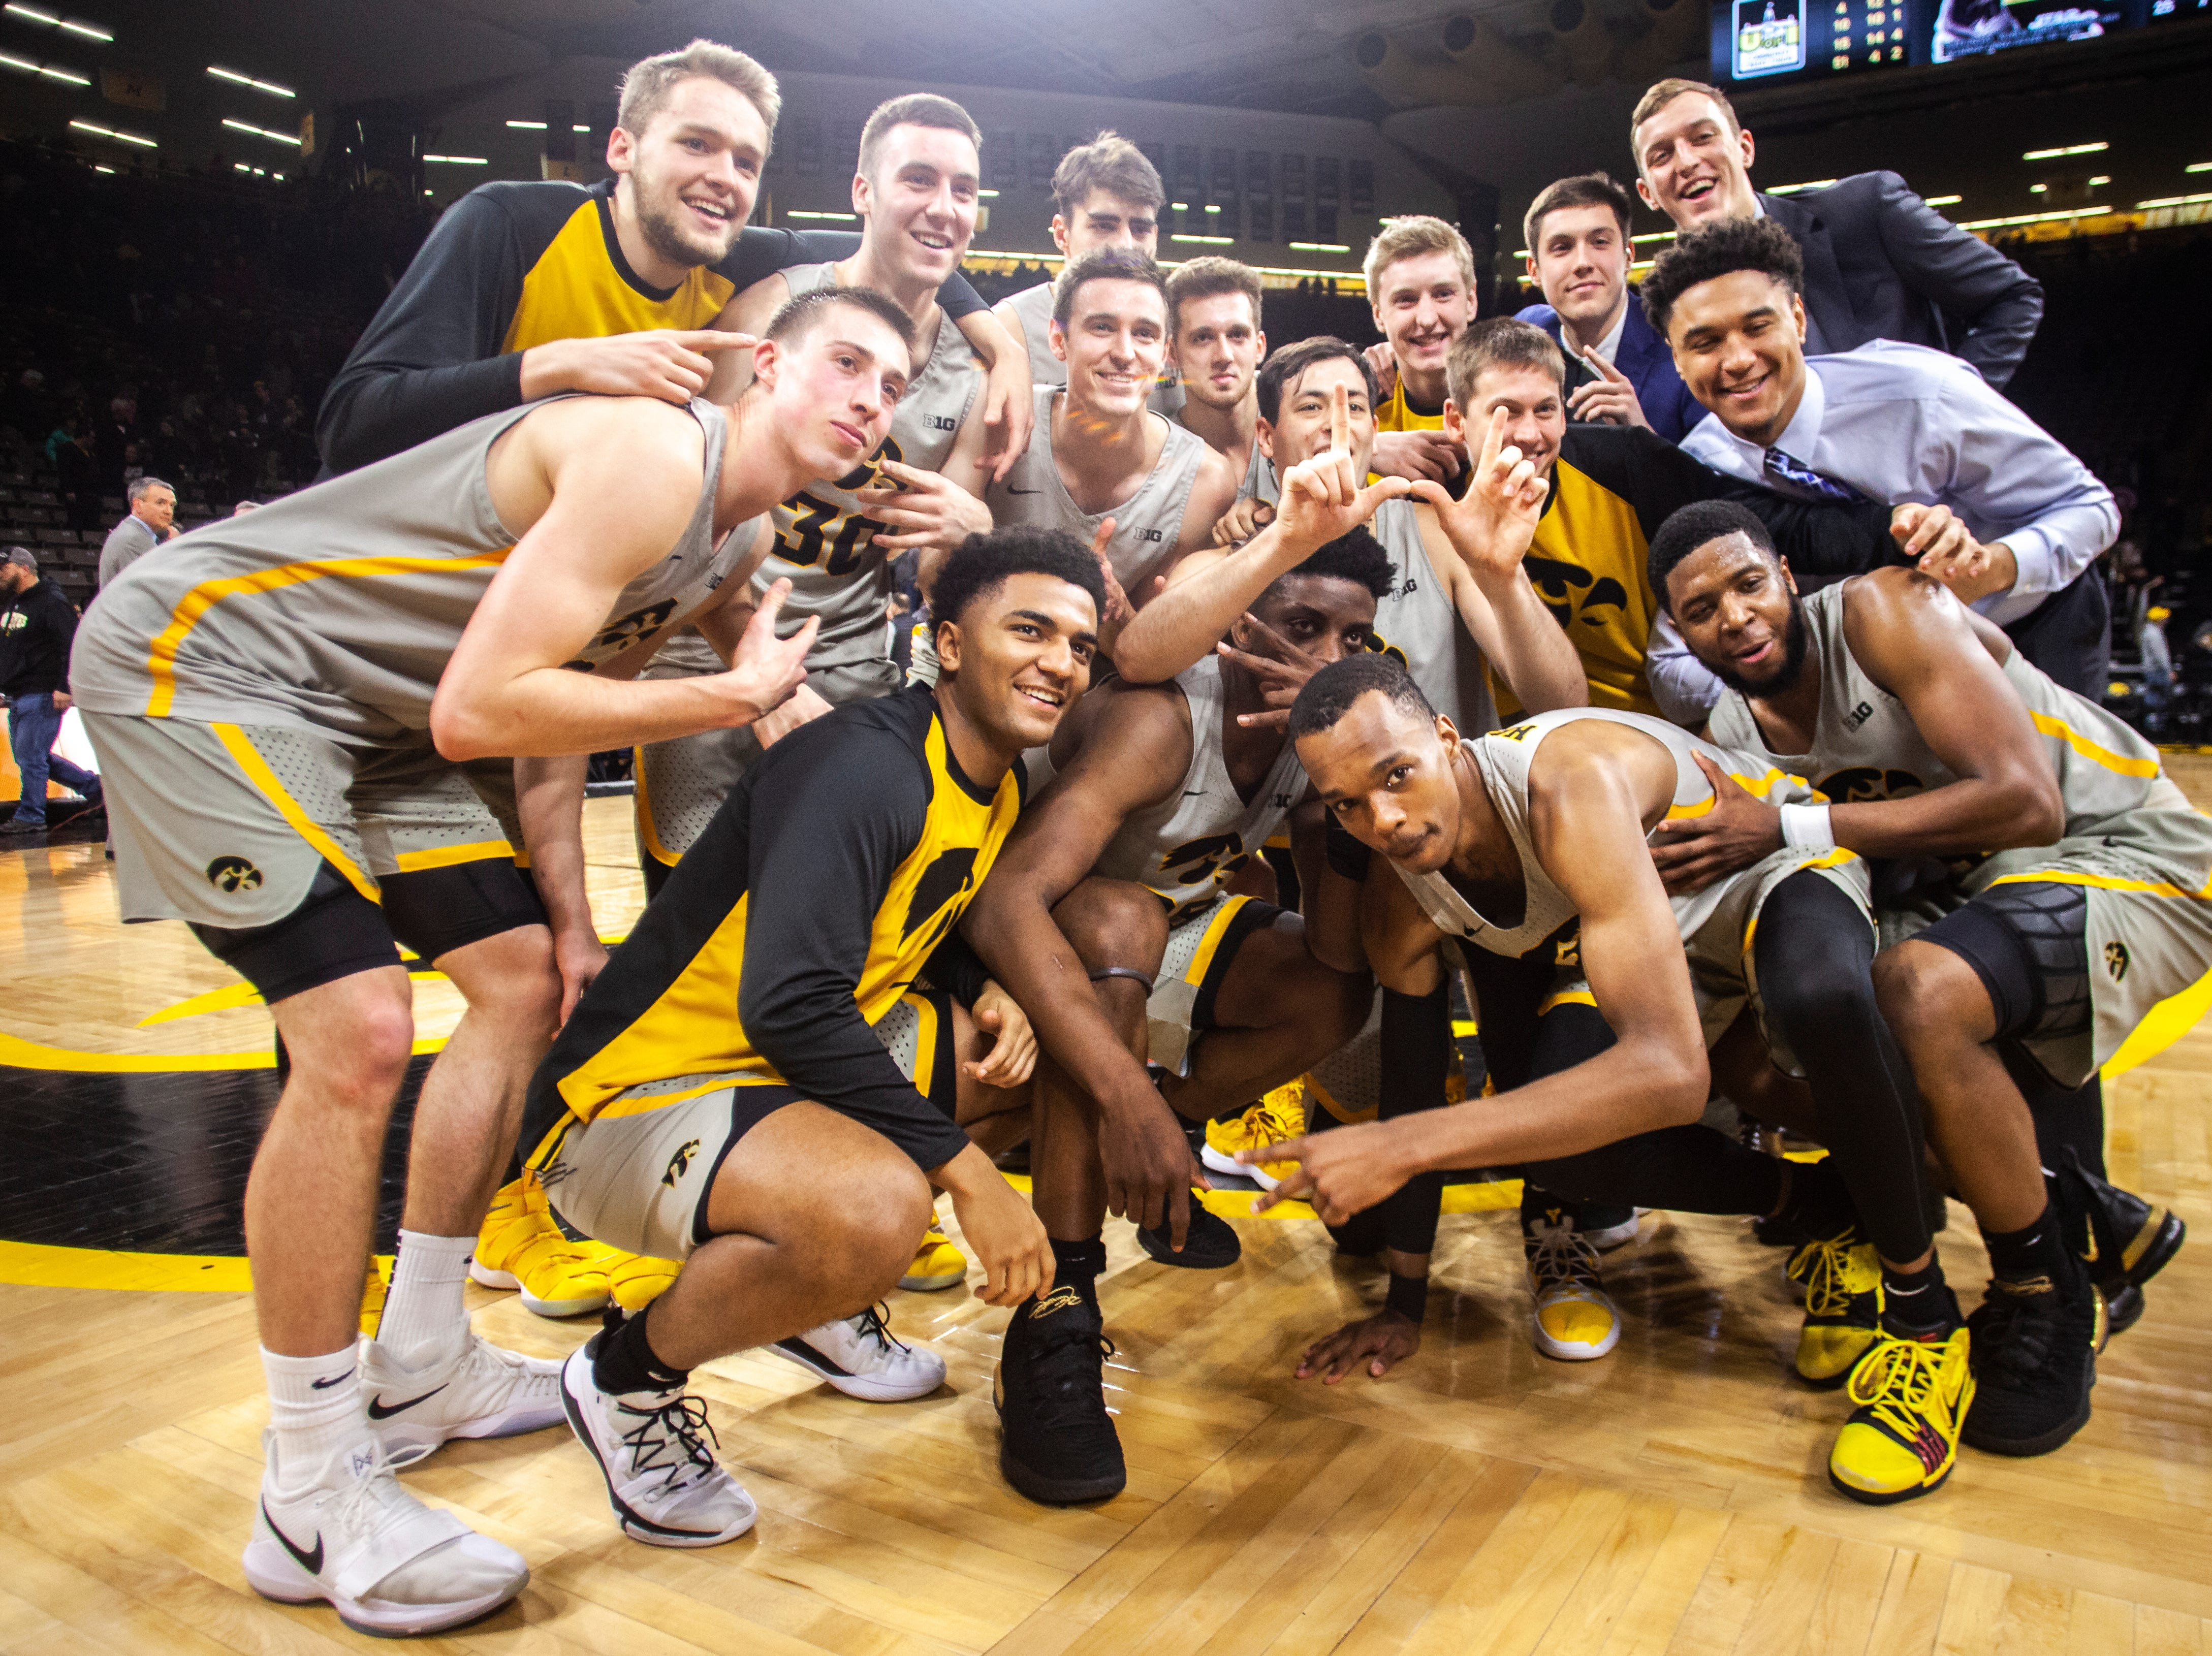 Iowa Hawkeyes players pose for a photo after a NCAA Big Ten Conference men's basketball game against Nebraska on Sunday, Jan. 6, 2019, at the Carver-Hawkeye Arena in Iowa City, Iowa. The Hawkeyes defeated, the Cornhuskers 93-84.